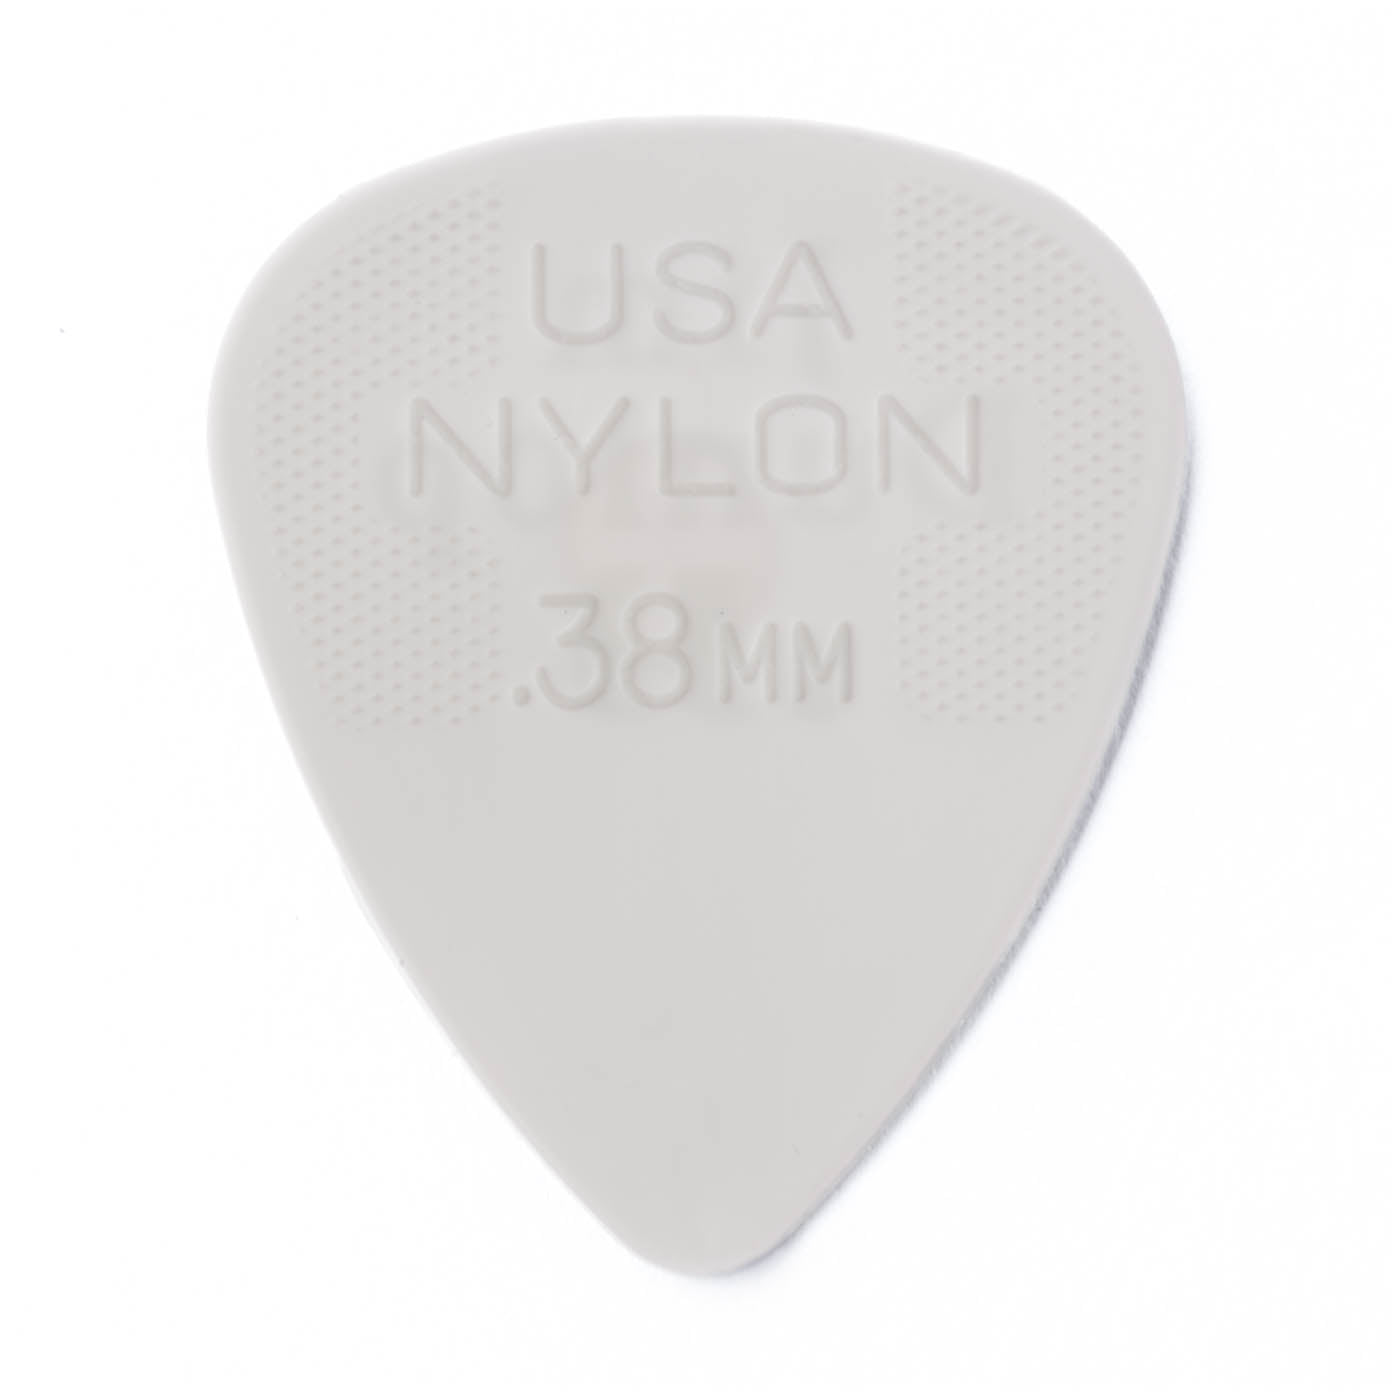 Dunlop Nylon Standard Guitar Pick .38mm